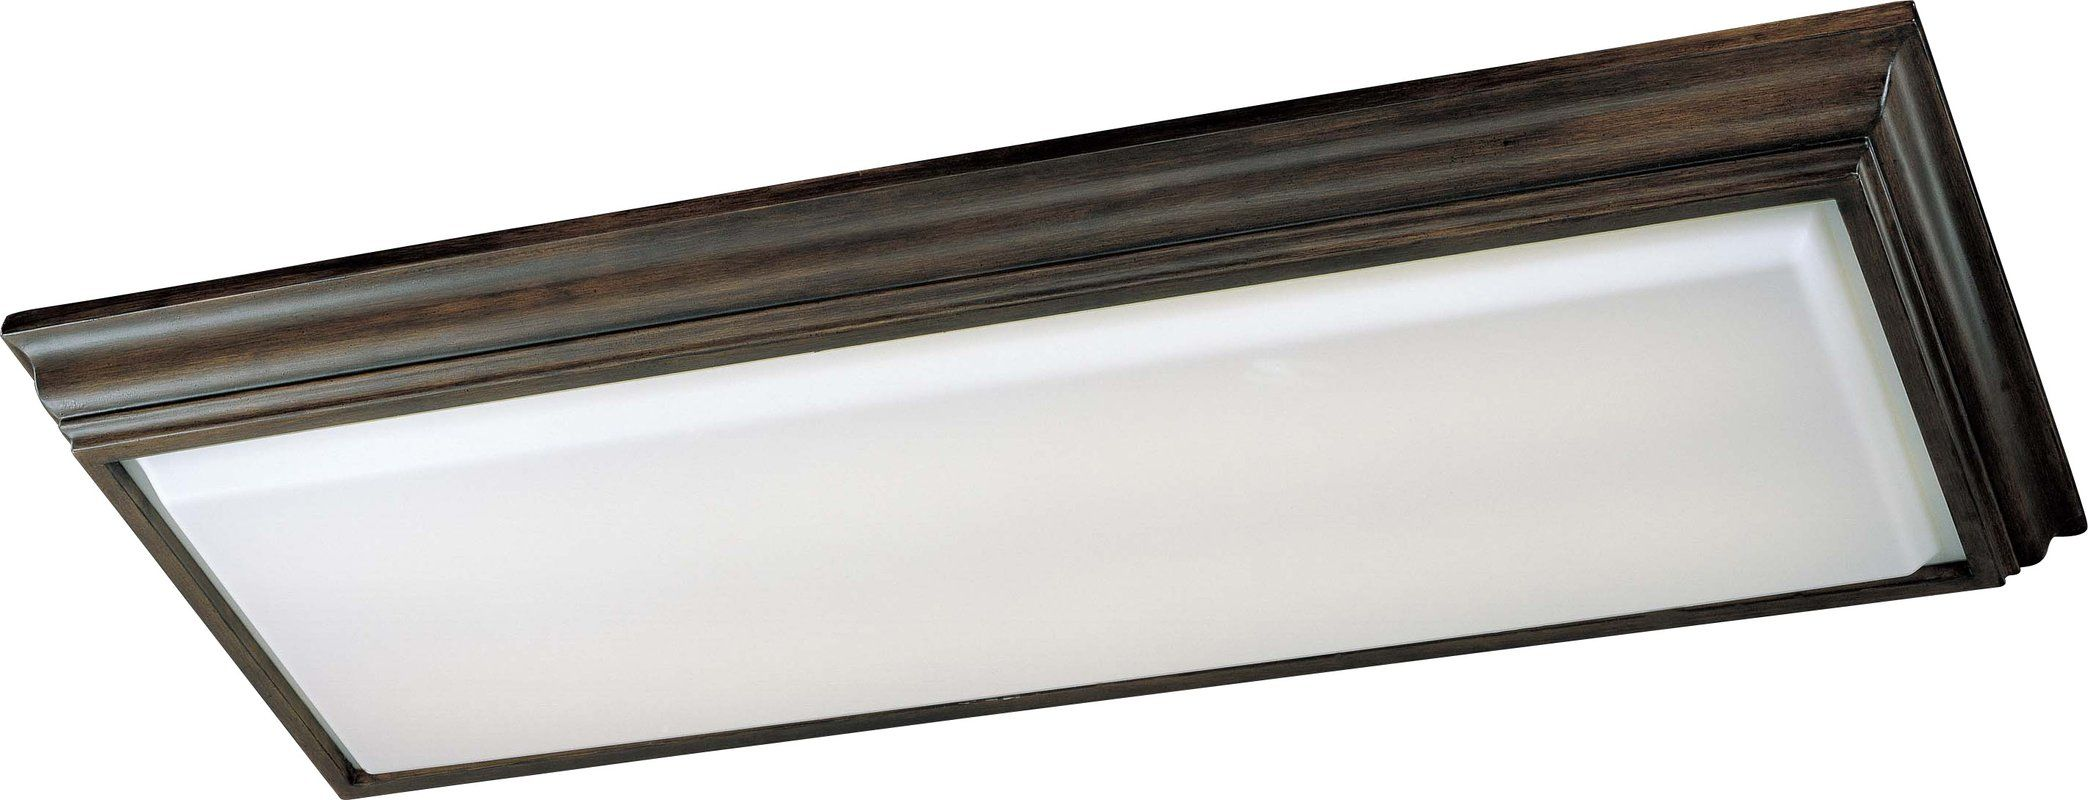 Minka lavery 1002 126 pl belcaro walnut energy star rated minka lavery 1002 126 pl belcaro walnut energy star rated functional fluorescent ceiling fixture from the kitchen fluorescent collection lightingdirect mozeypictures Images